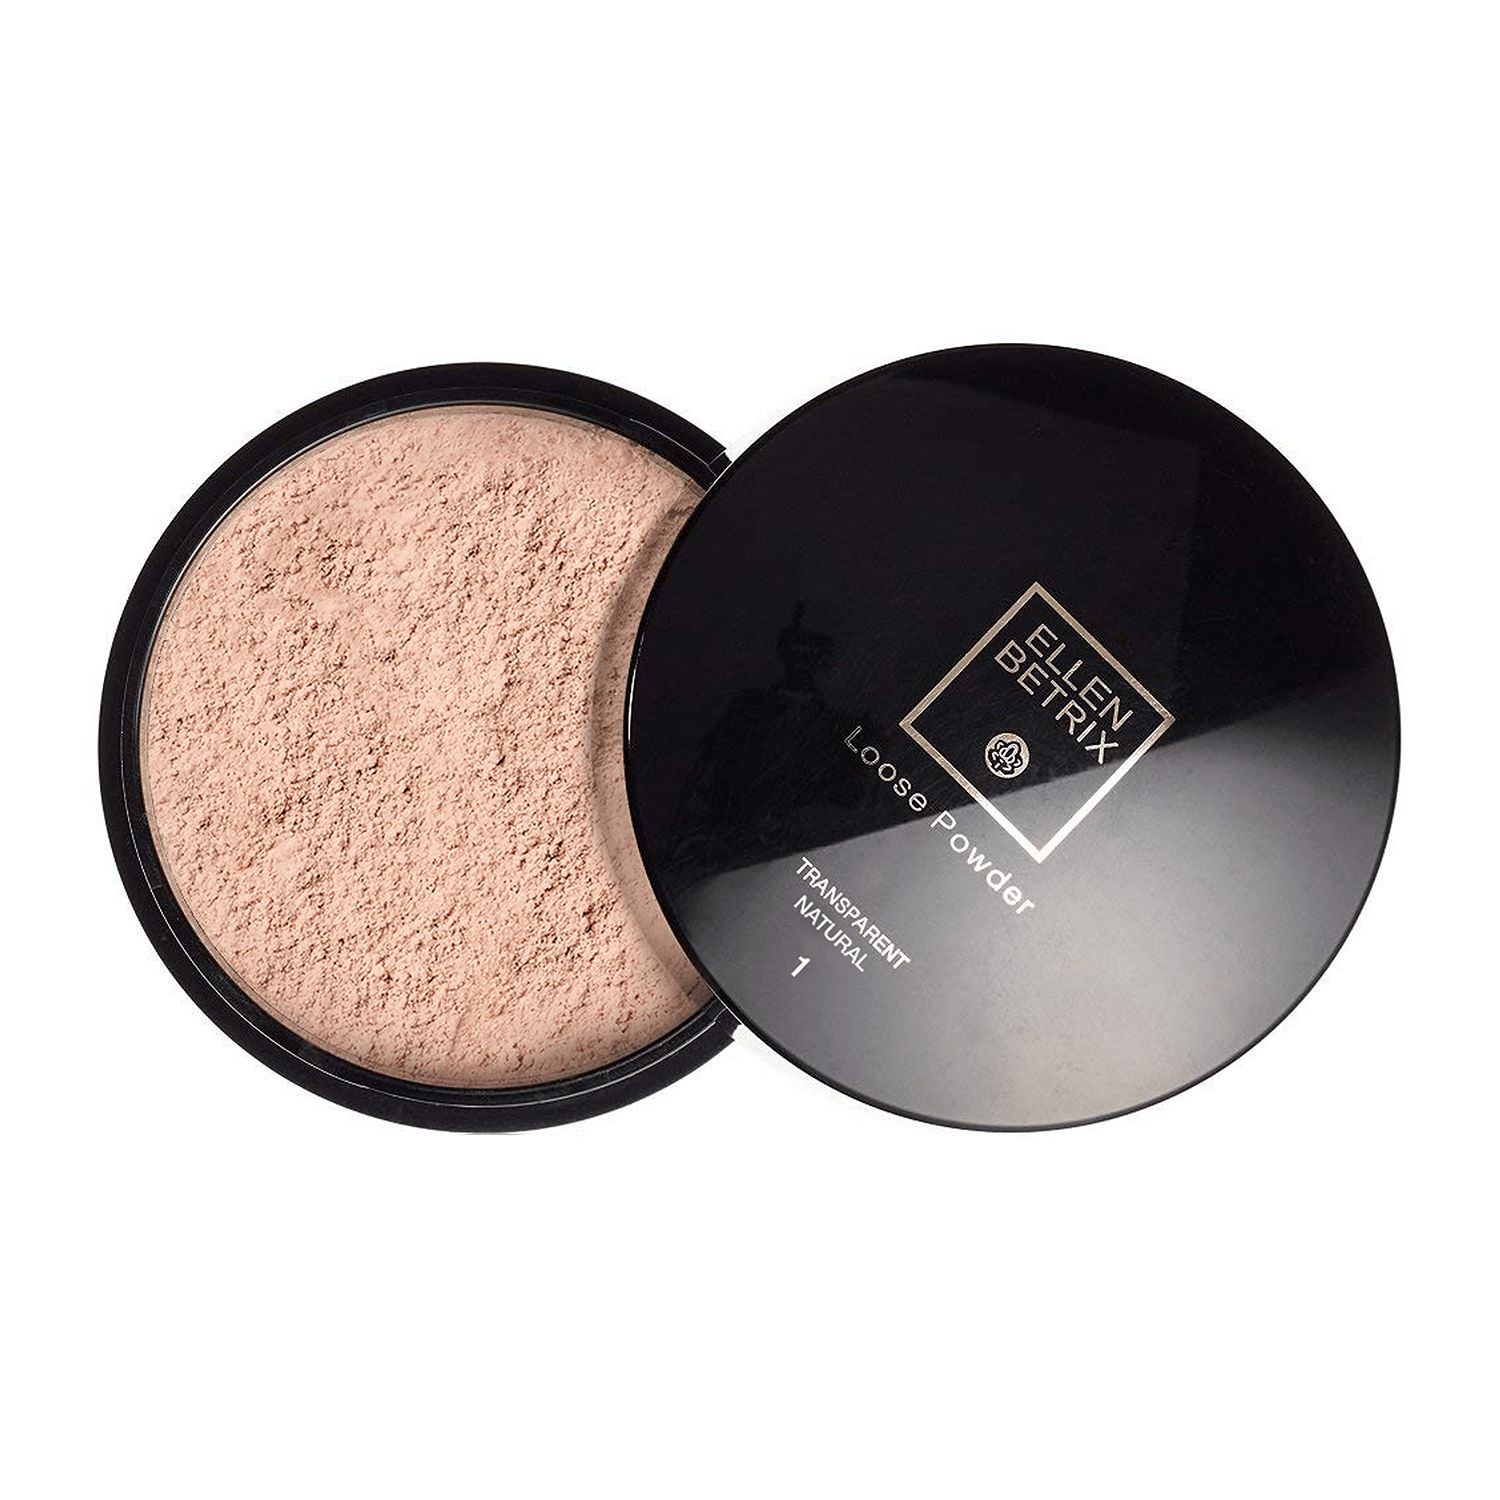 4069700061311_Loose_Powder_Translucent_natural-1